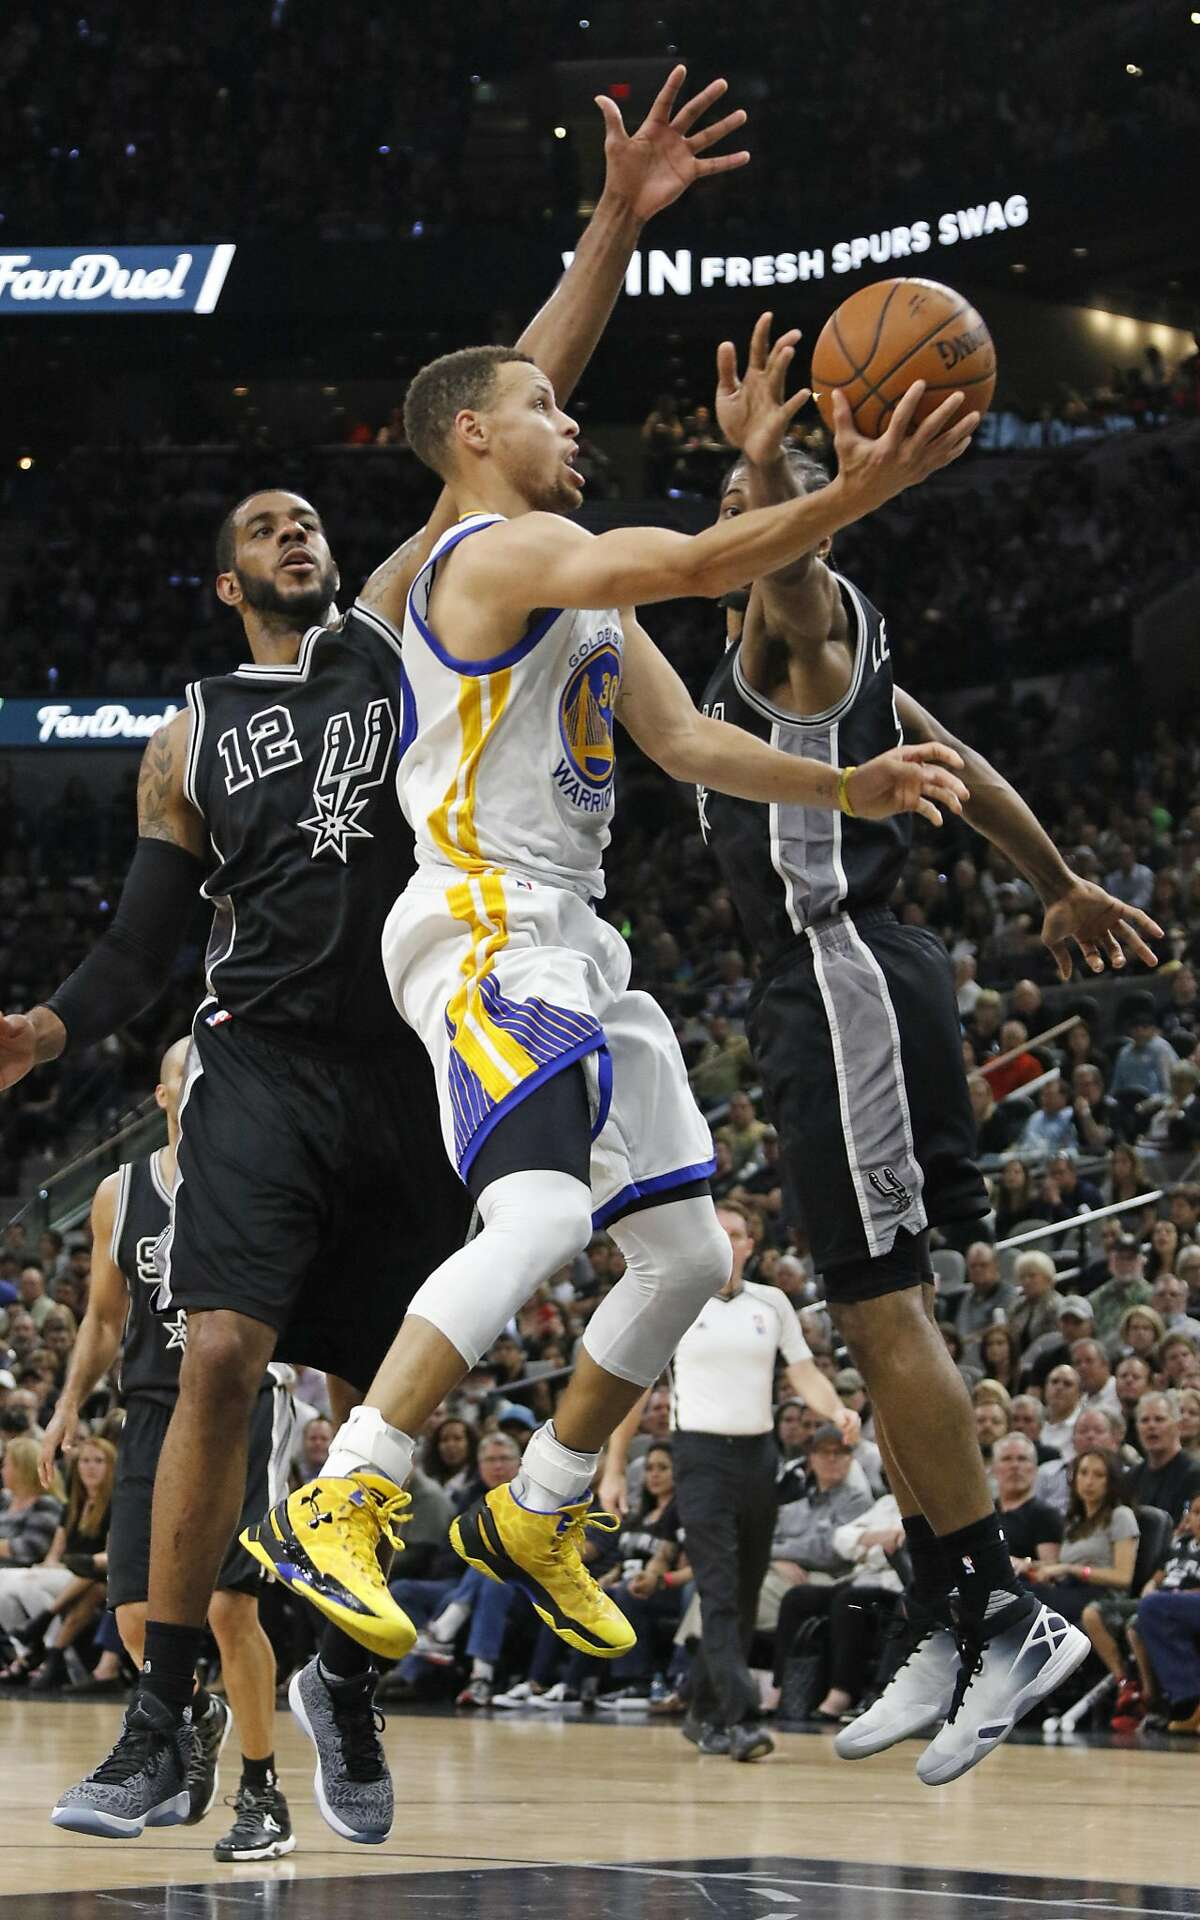 SAN ANTONIO,TX - APRIL 10: Stephen Curry #30 of the Golden State Warriors scores between LaMarcus Aldridge #12 and Kawhi Leonard #2 of the San Antonio Spurs at AT&T Center on April 10, 2016 in San Antonio, Texas. The Warriors won 92-86, tying the all-time record for wins in a season with 72. NOTE TO USER: User expressly acknowledges and agrees that , by downloading and or using this photograph, User is consenting to the terms and conditions of the Getty Images License Agreement. (Photo by Ronald Cortes/Getty Images)